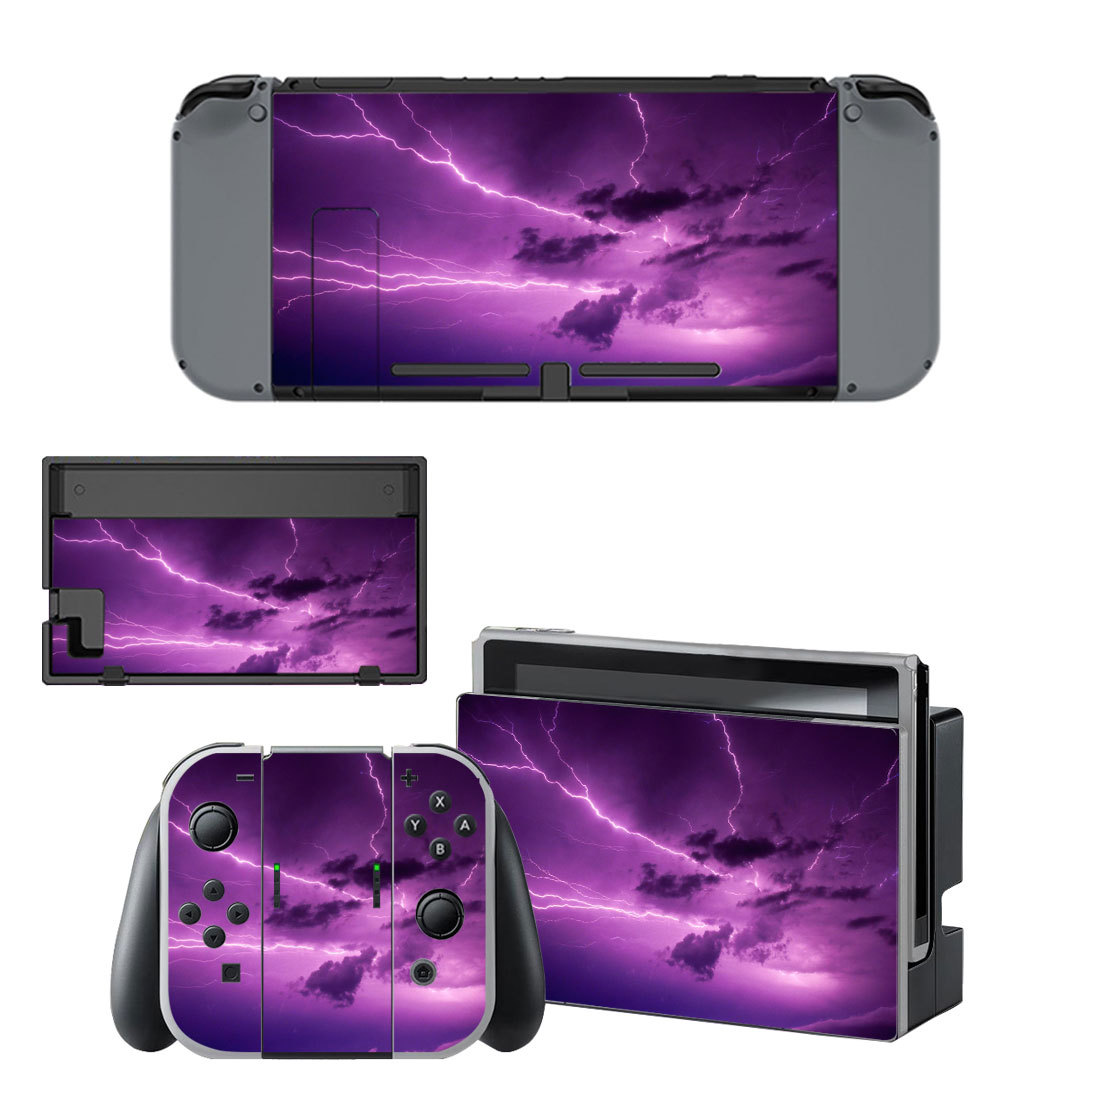 Lightning cloudy sky decal for Nintendo switch console sticker skin